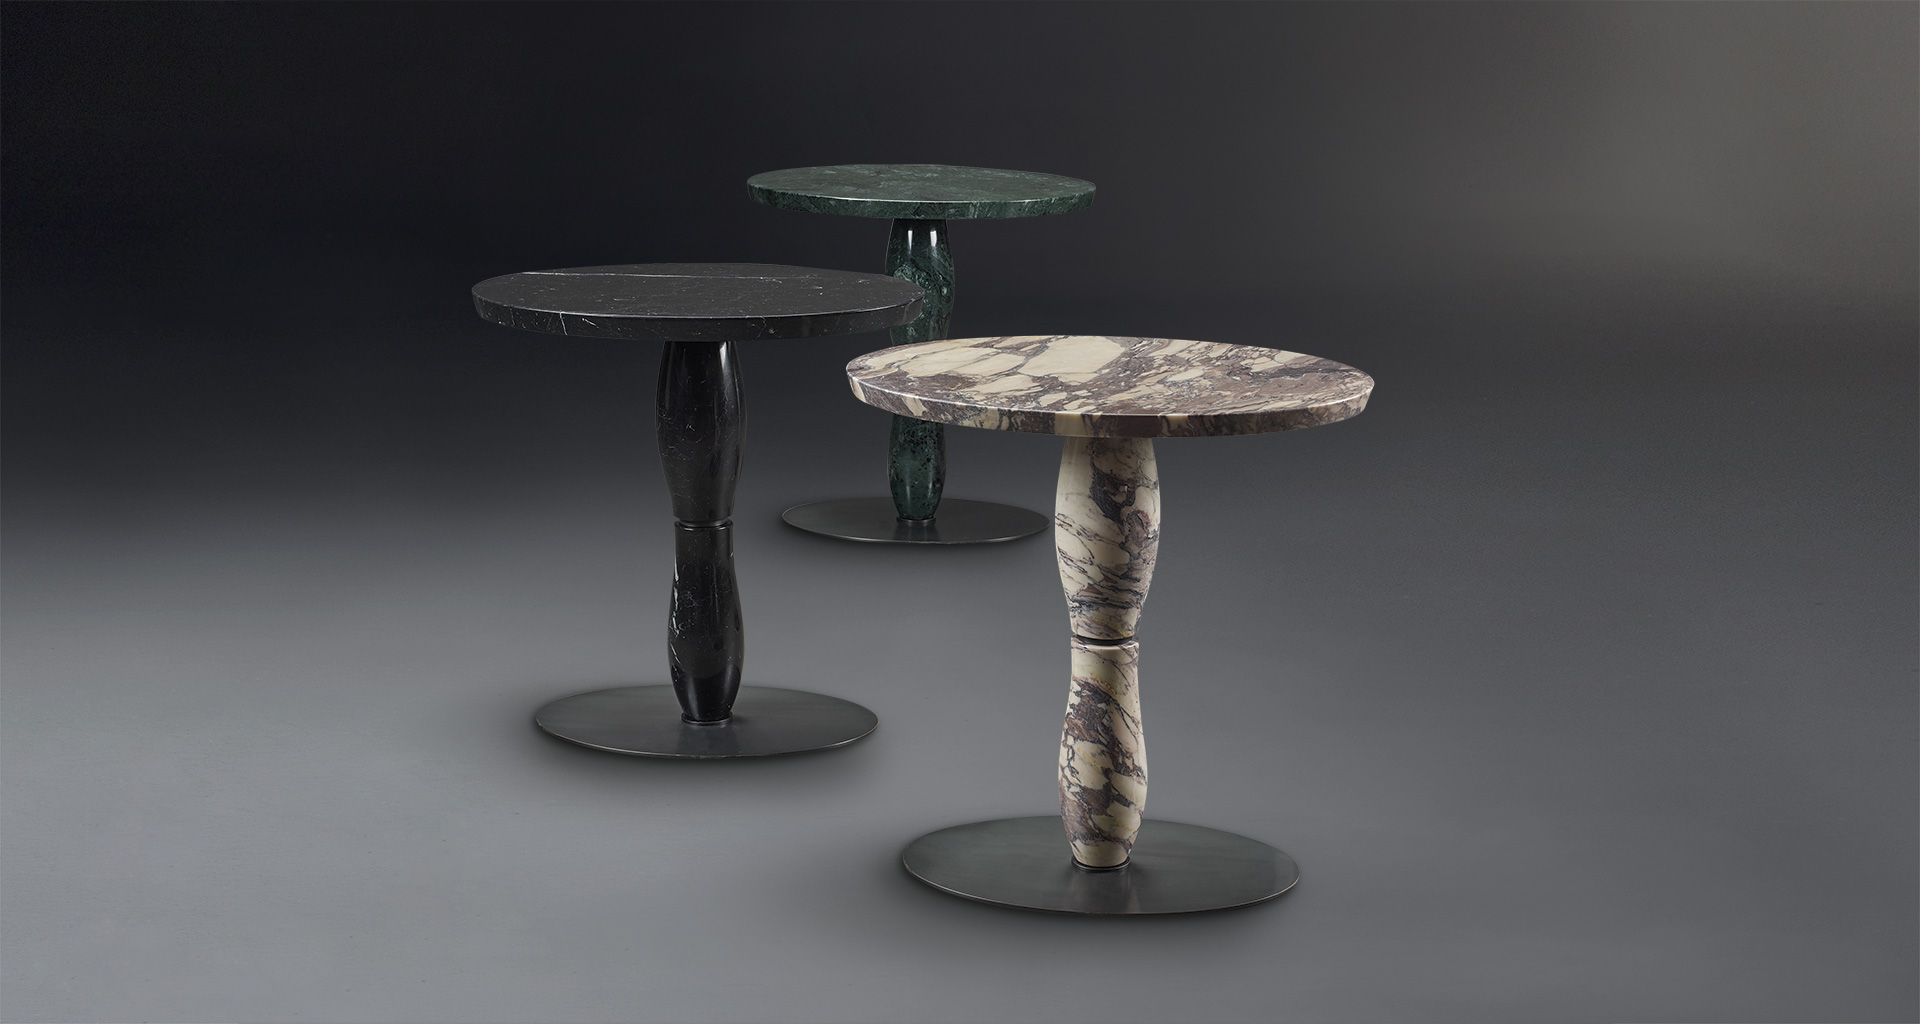 Mediterranée is a small table available in marble or bronze and wood, from Promemoria's Capsule Collection by Olivier Gagnère | Promemoria